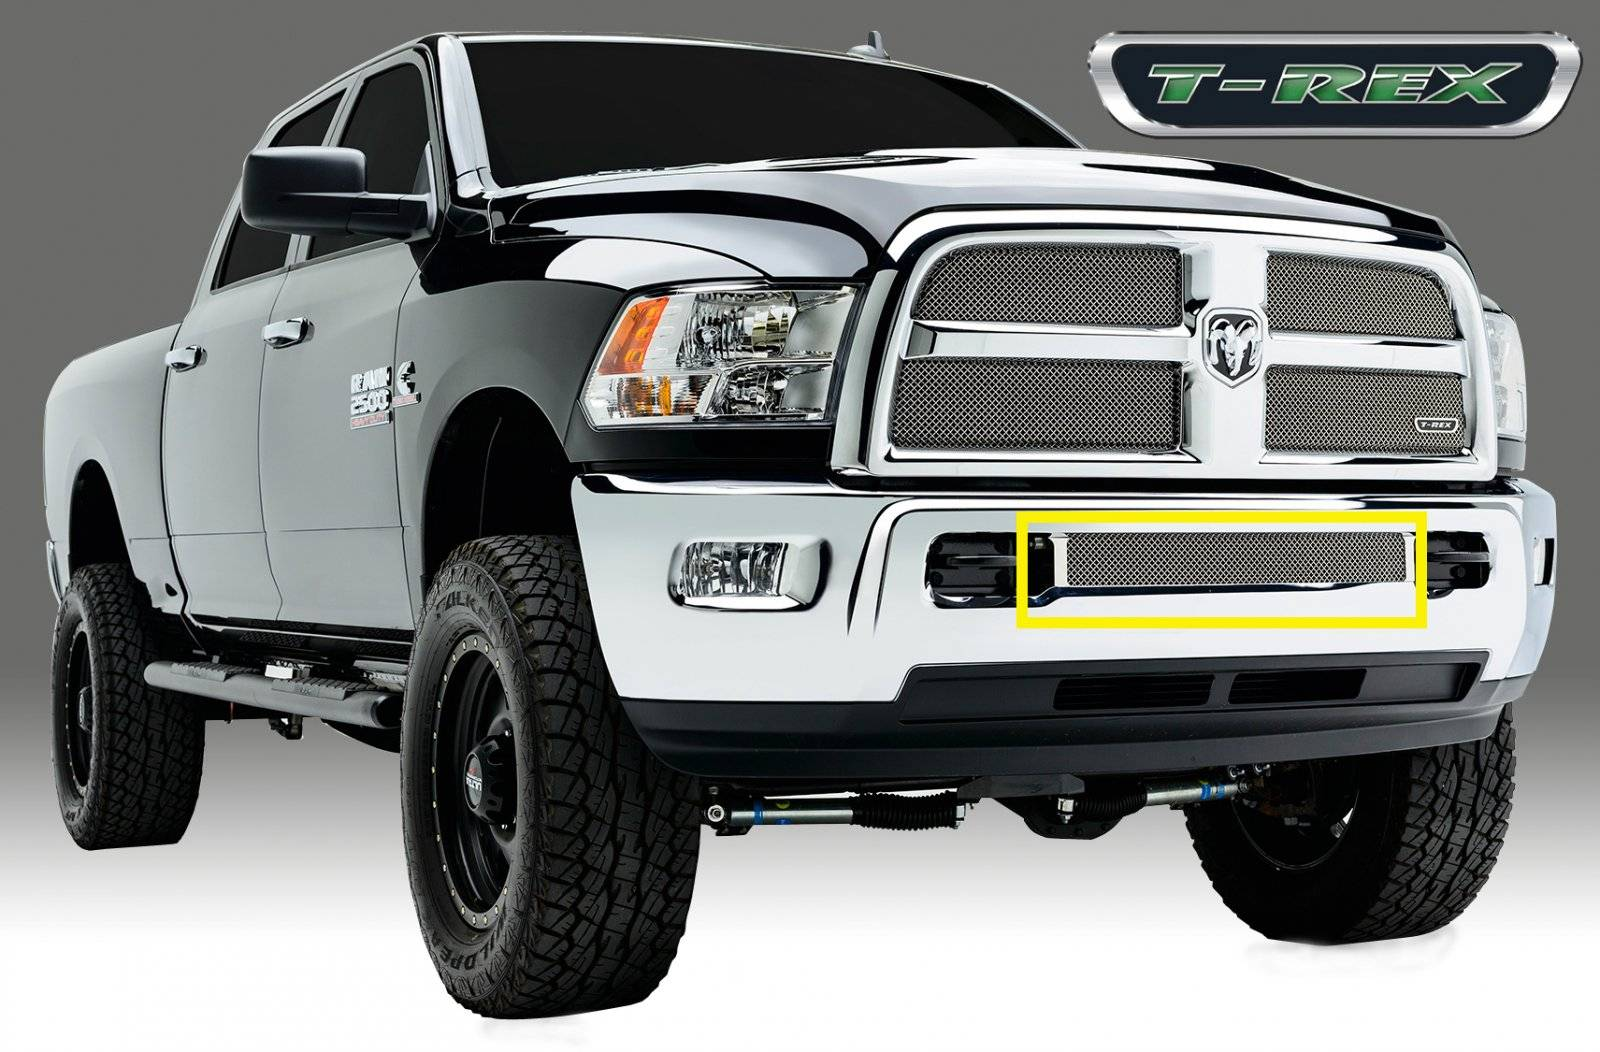 T-REX Dodge Ram PU 2500 / 3500 Sport Series, Mesh Grille, Bumper, Insert, 1 Pc, Triple Chromed Stainless Steel - Pt # 45452